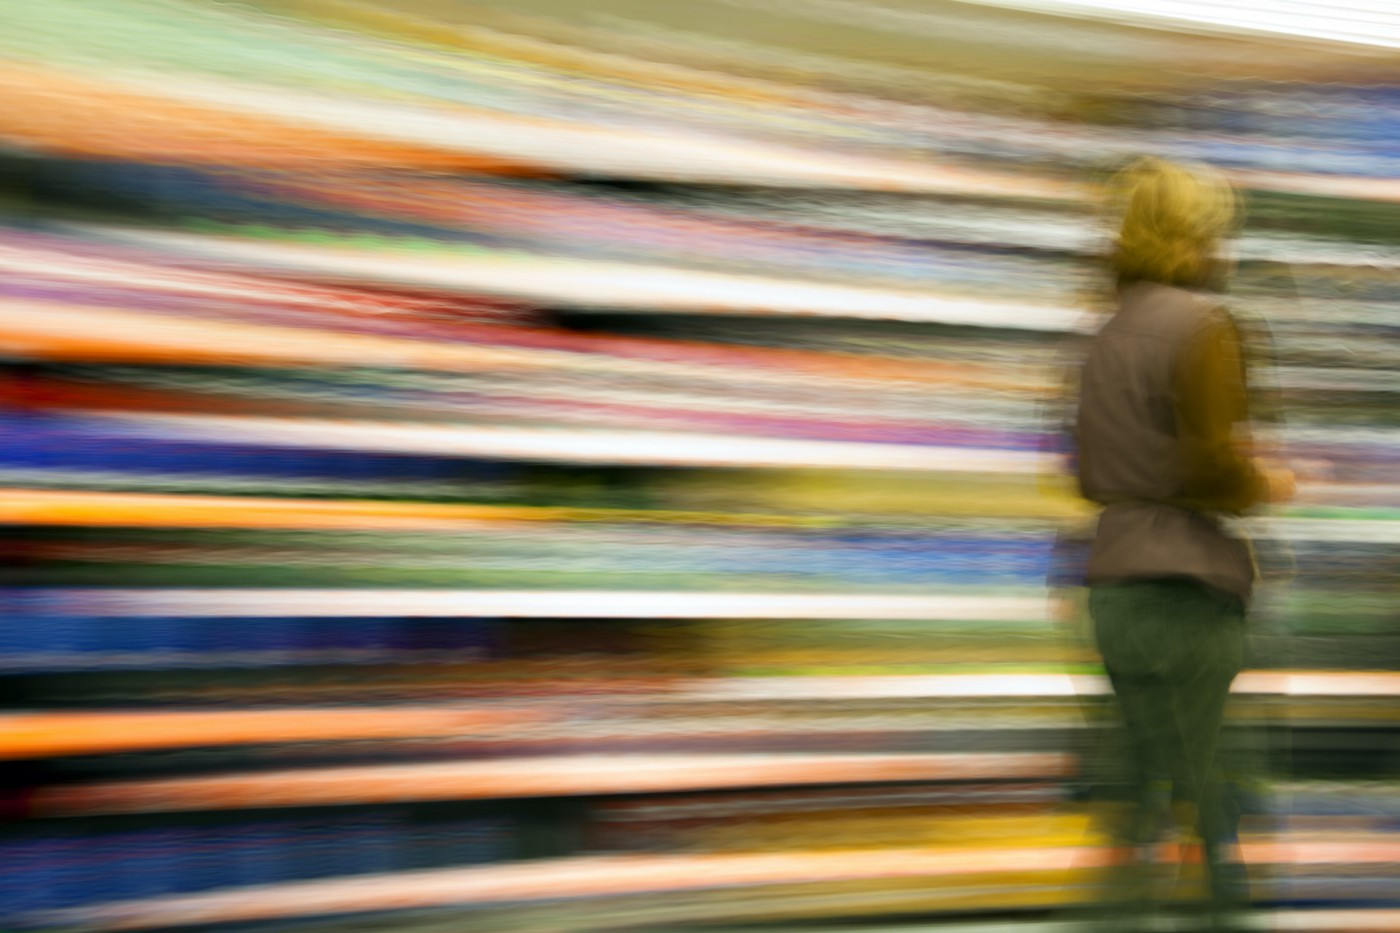 A person walking toward the right side of the pic against a colorful, motion-blurred background.